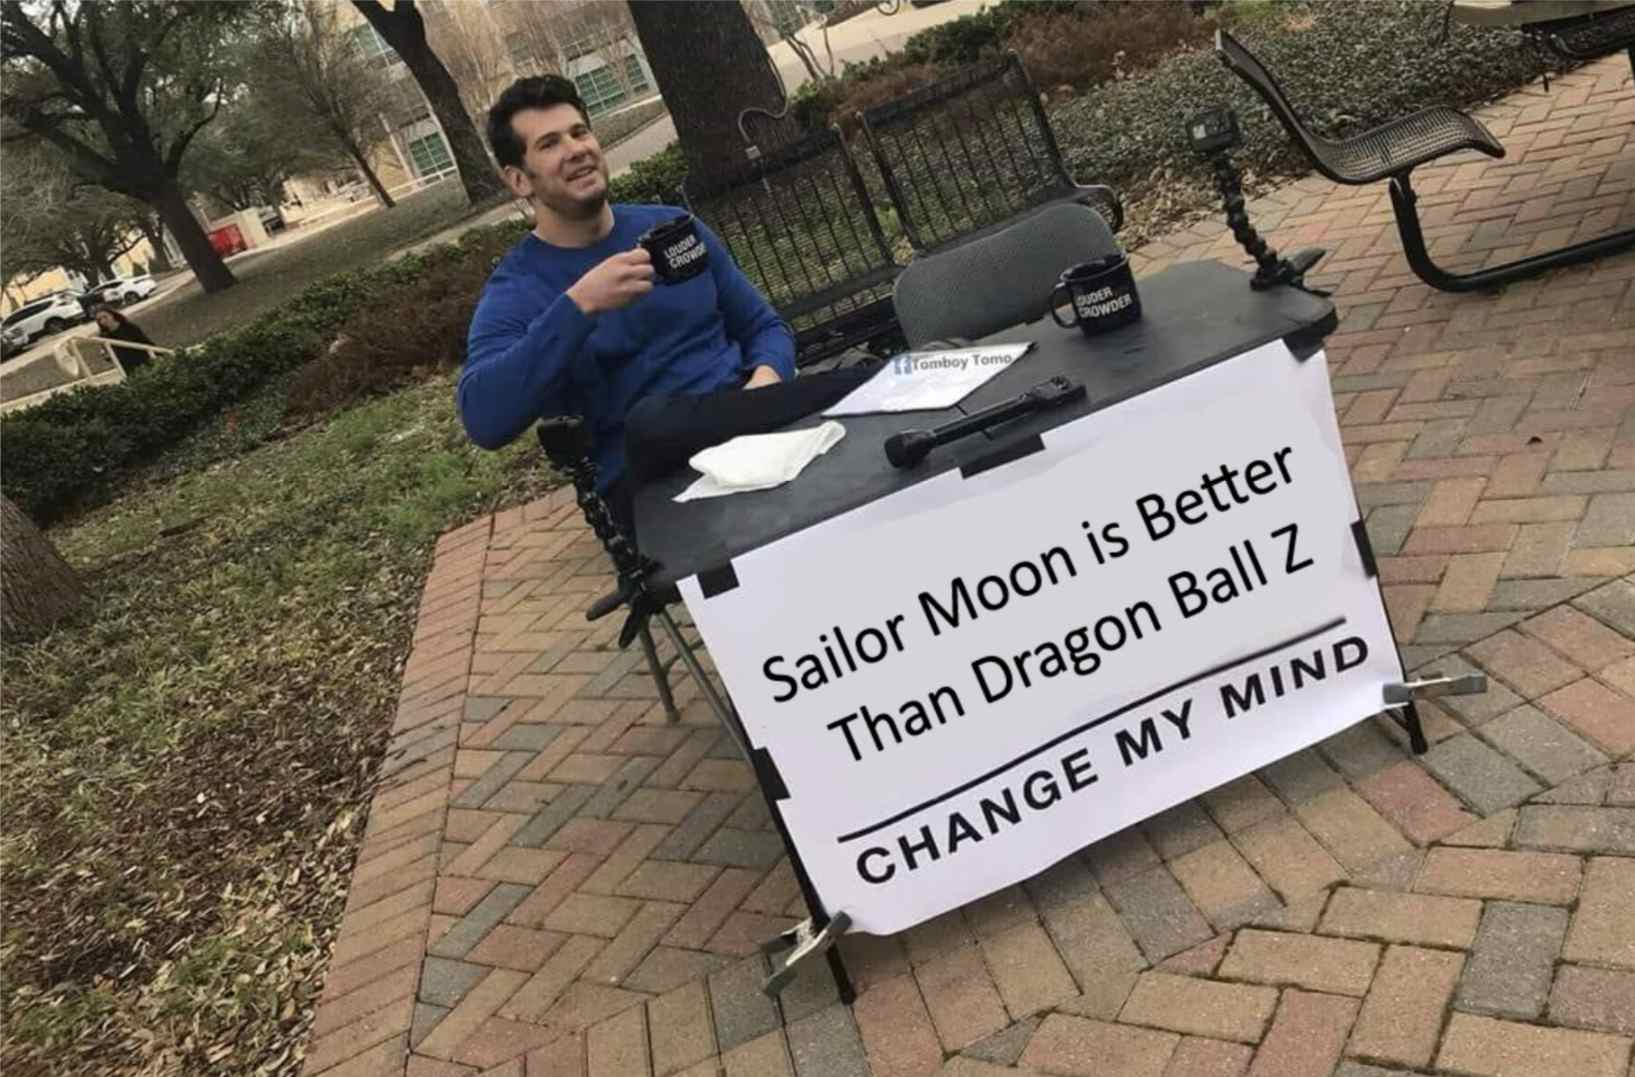 Louder With Crowder Sailor Moon and Dragon Ball Z anime meme